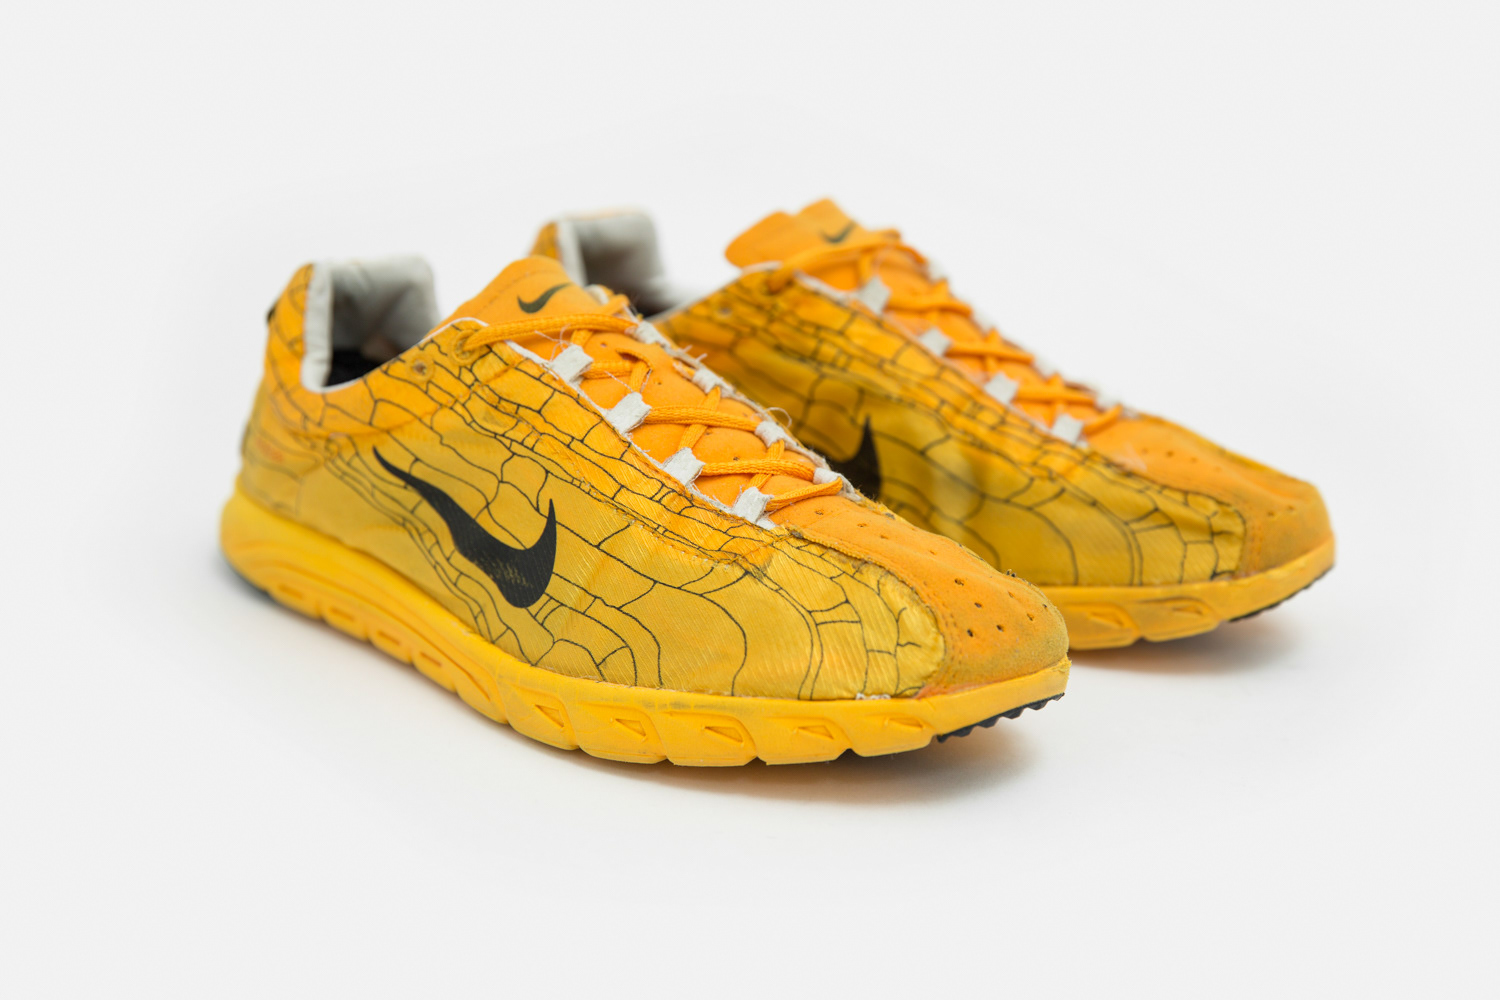 b10f6e9ab35 The Nike Mayfly was designed to last 100 km before falling apart. Its  limited lifespan allowed it to be incredibly lightweight and cheap to  manufacture